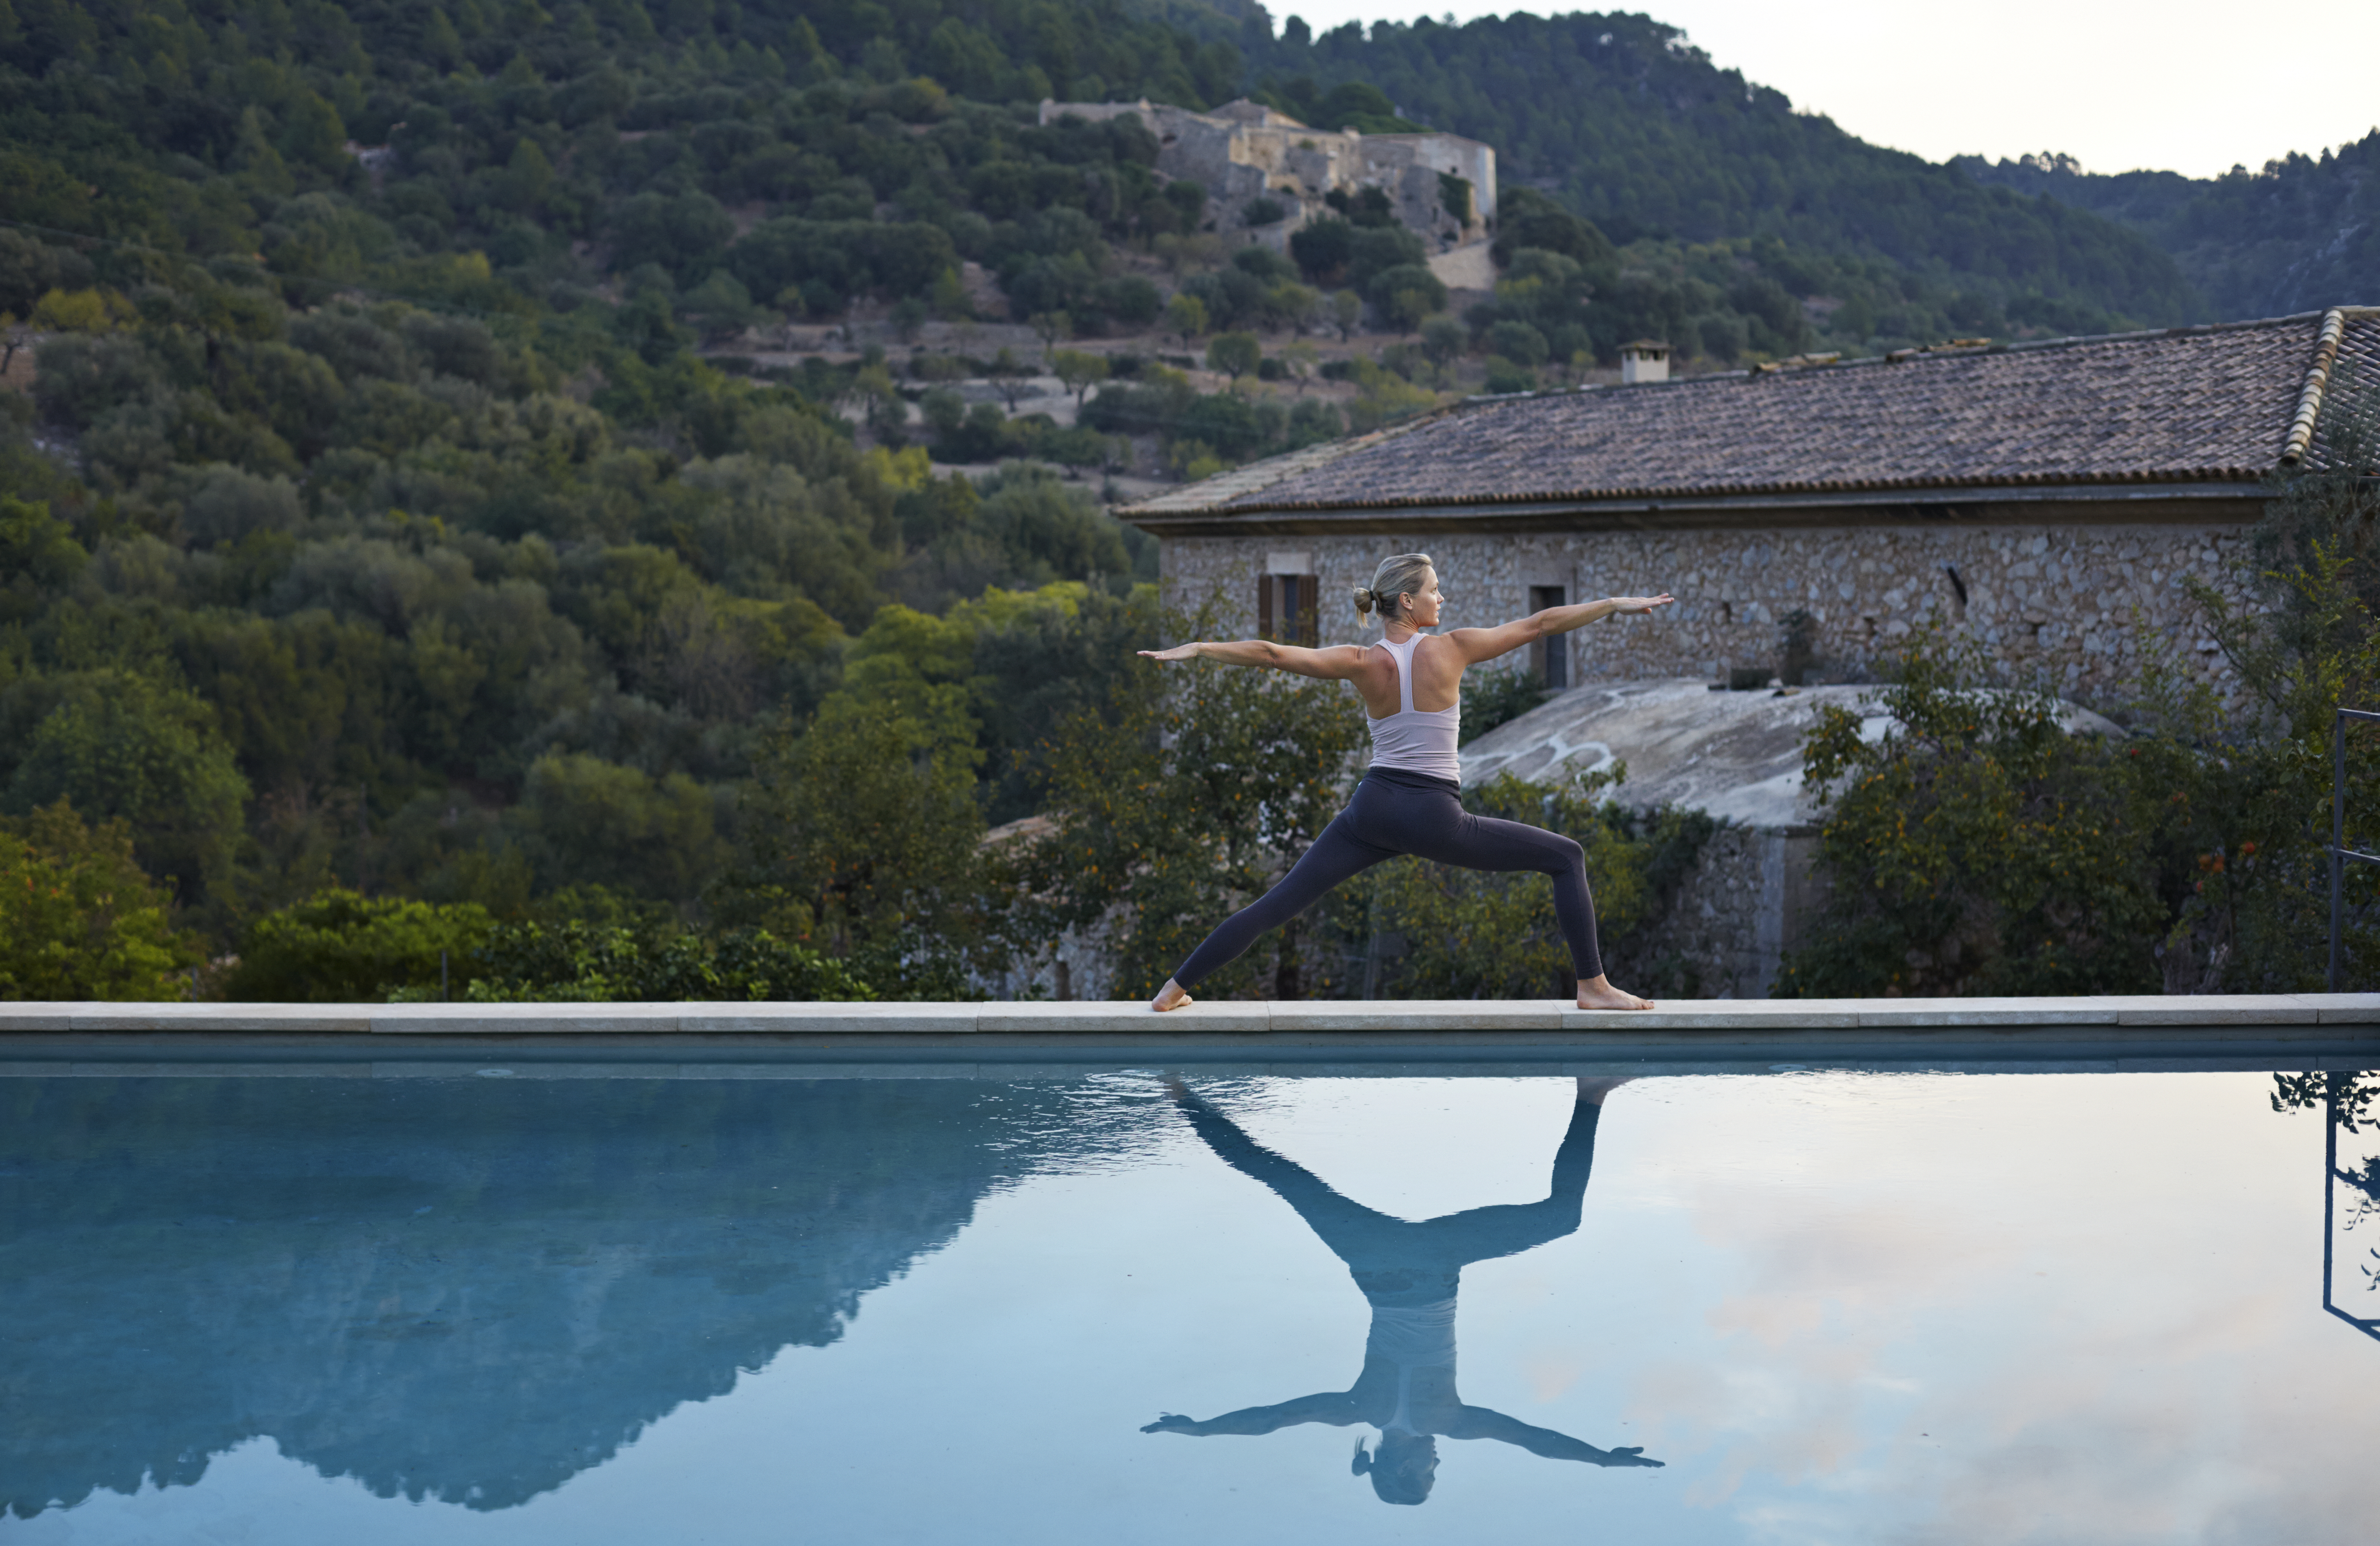 Take a Break from the City Chaos and Plan a Health & Fitness Holiday